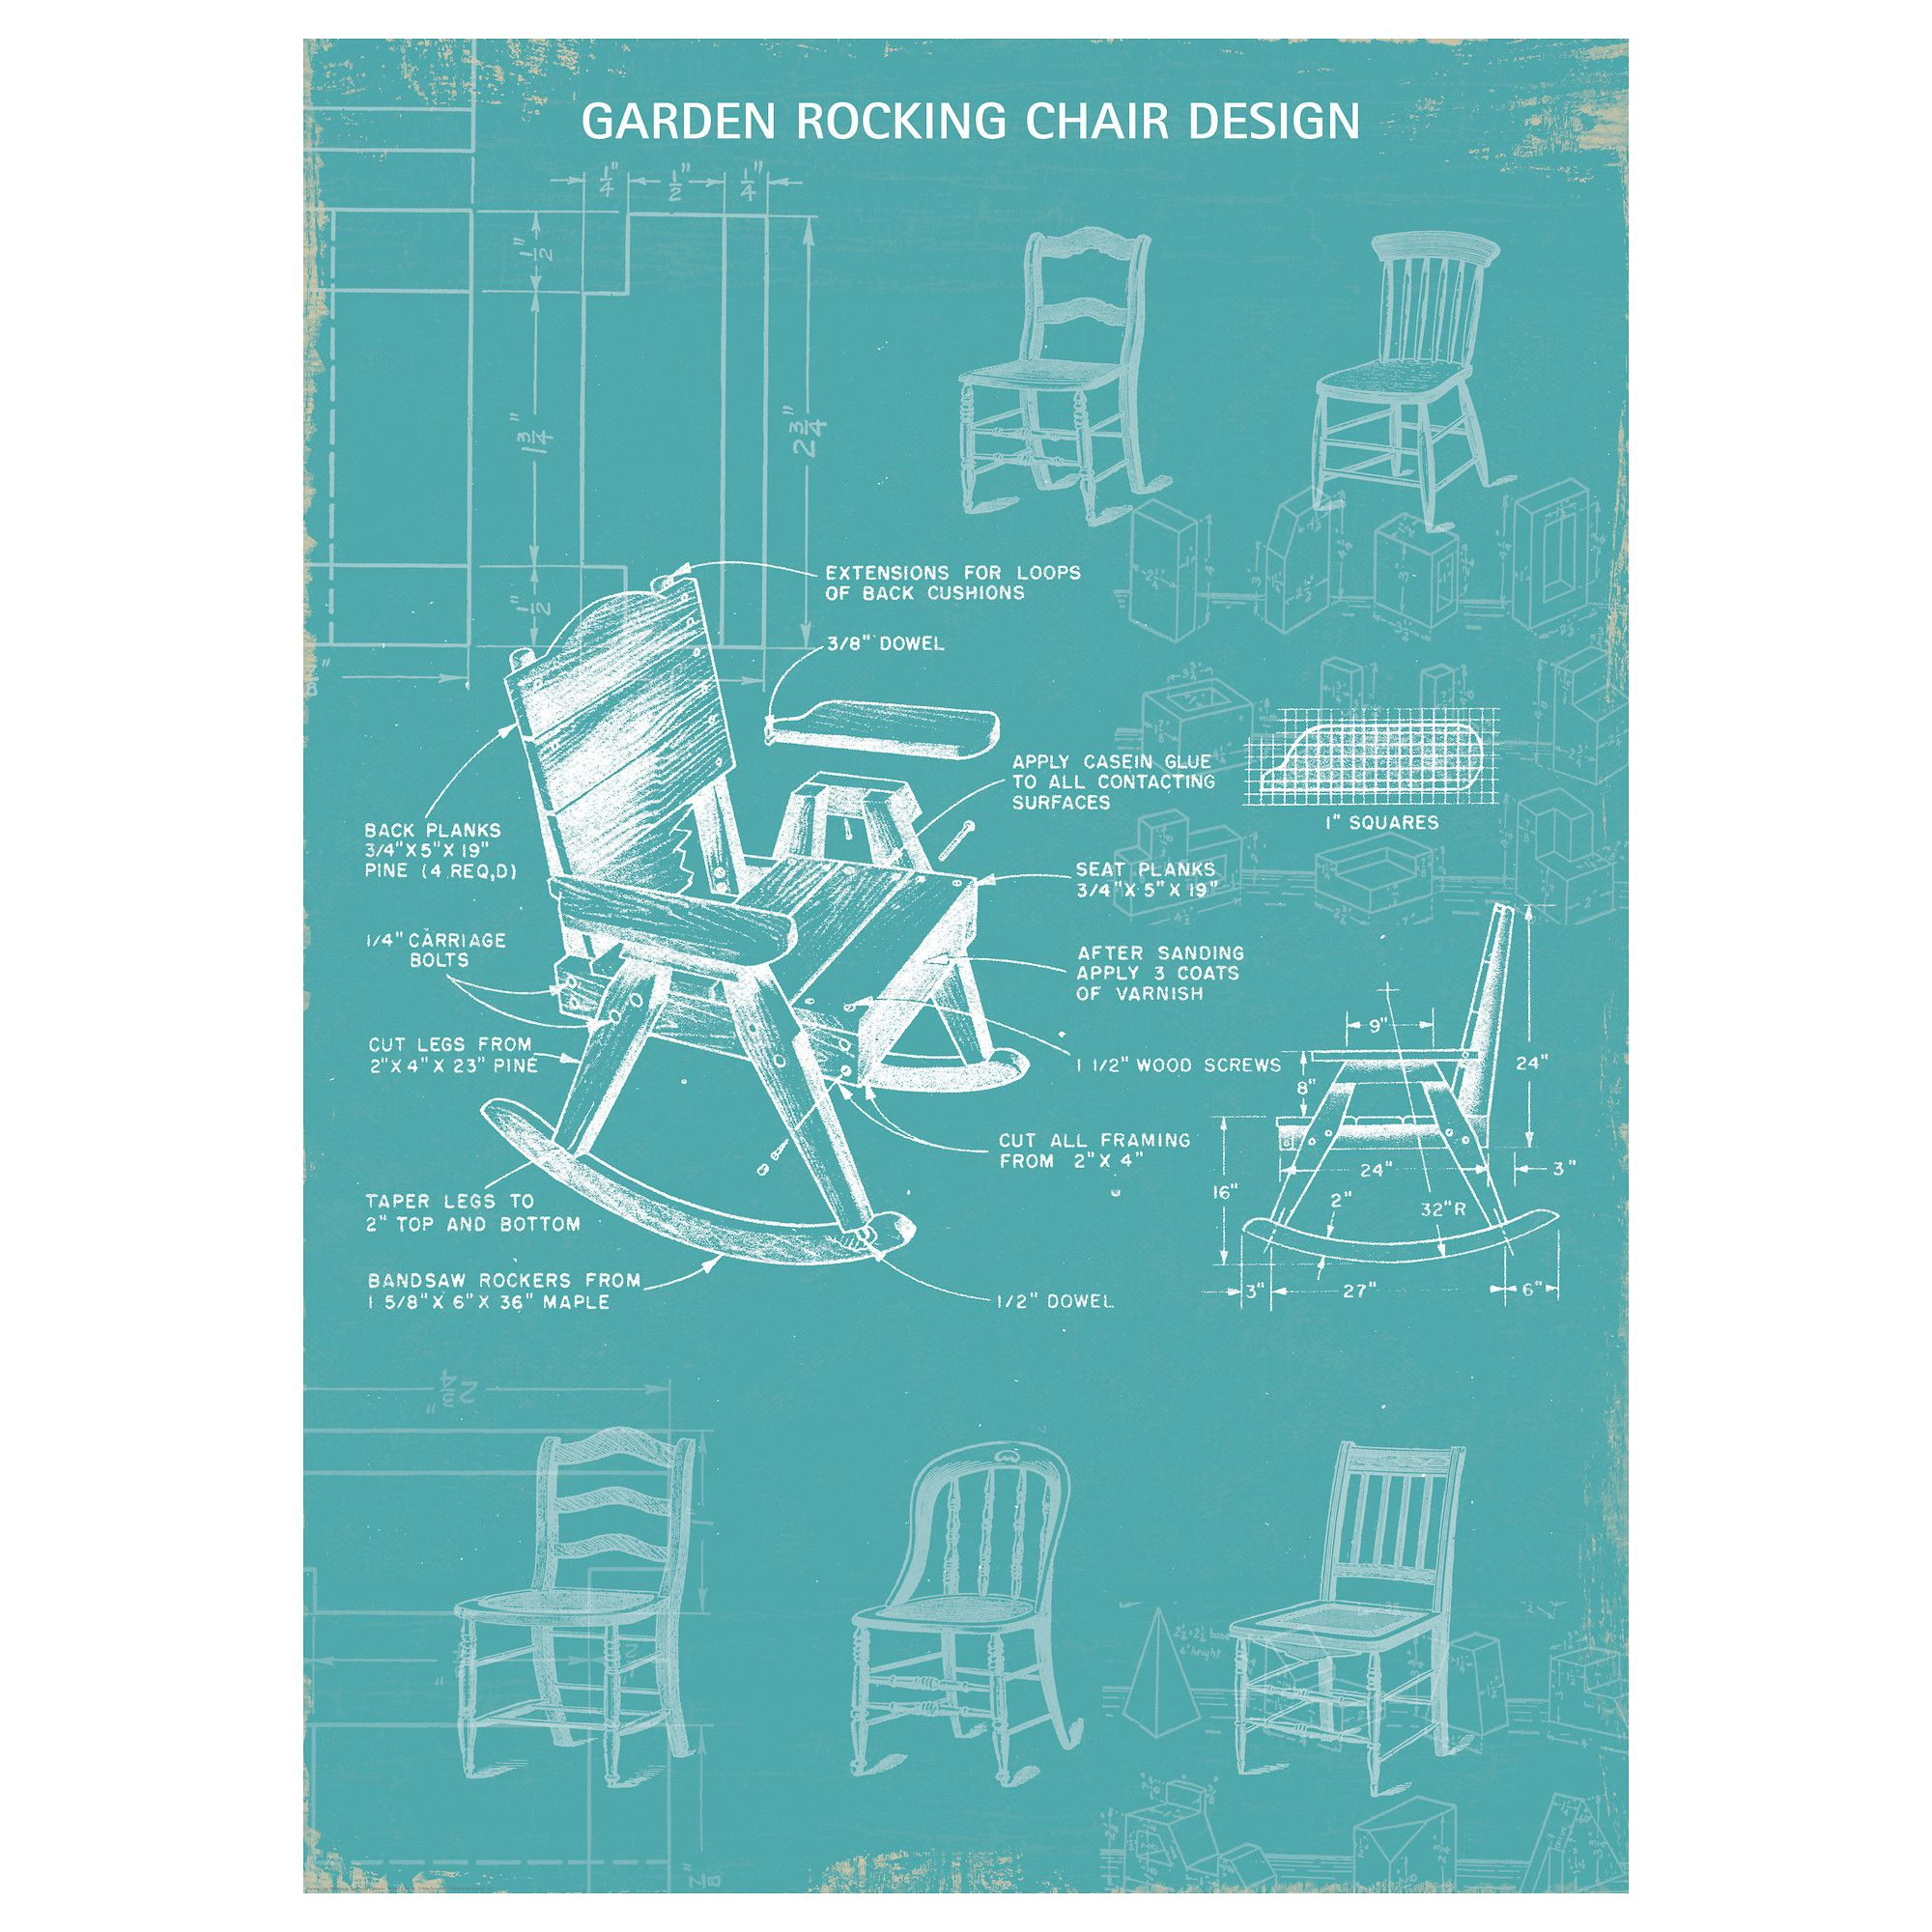 Ikea Poster How To Build A Rocking Chair The Ikea Way Ild Poster Ikea I